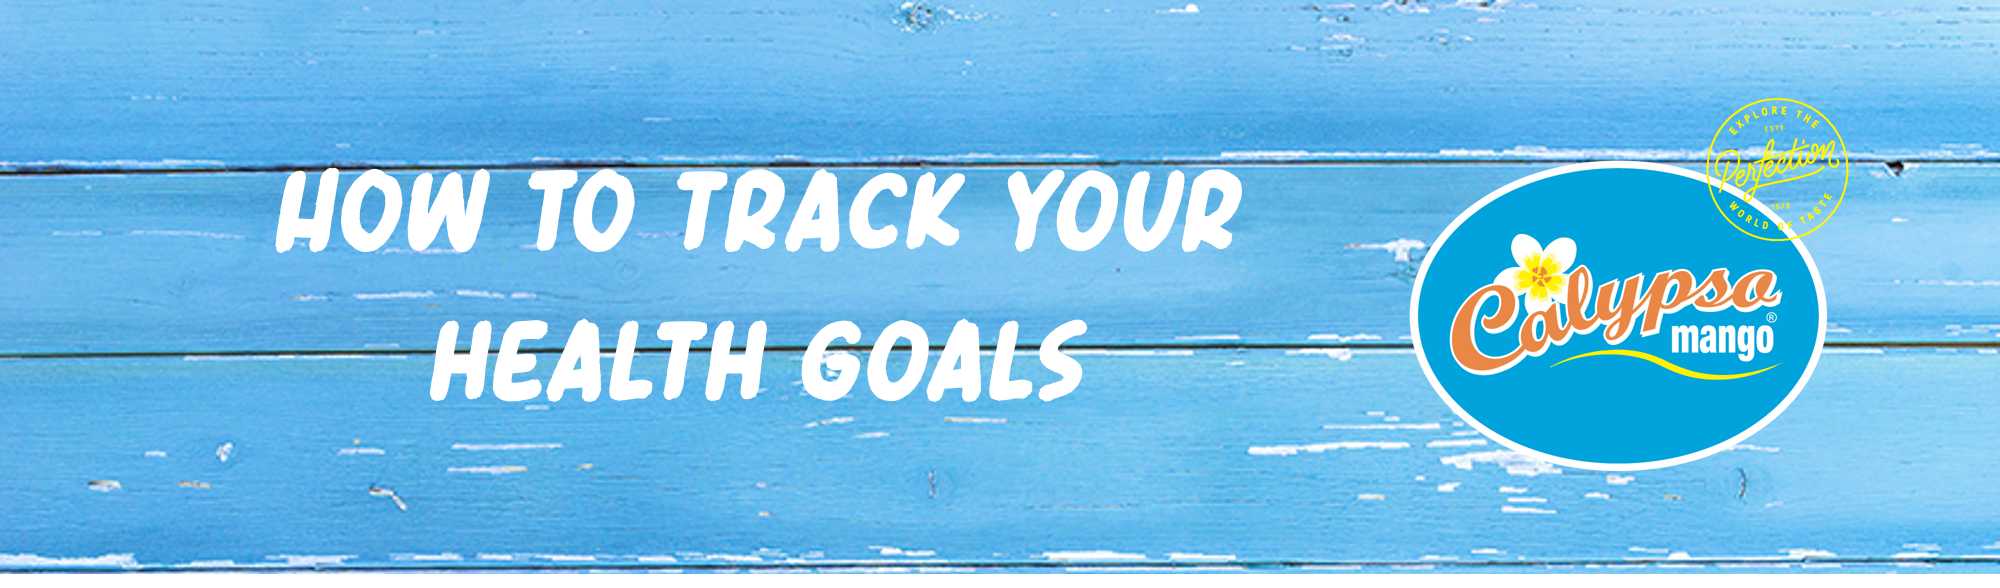 How to track your health goals